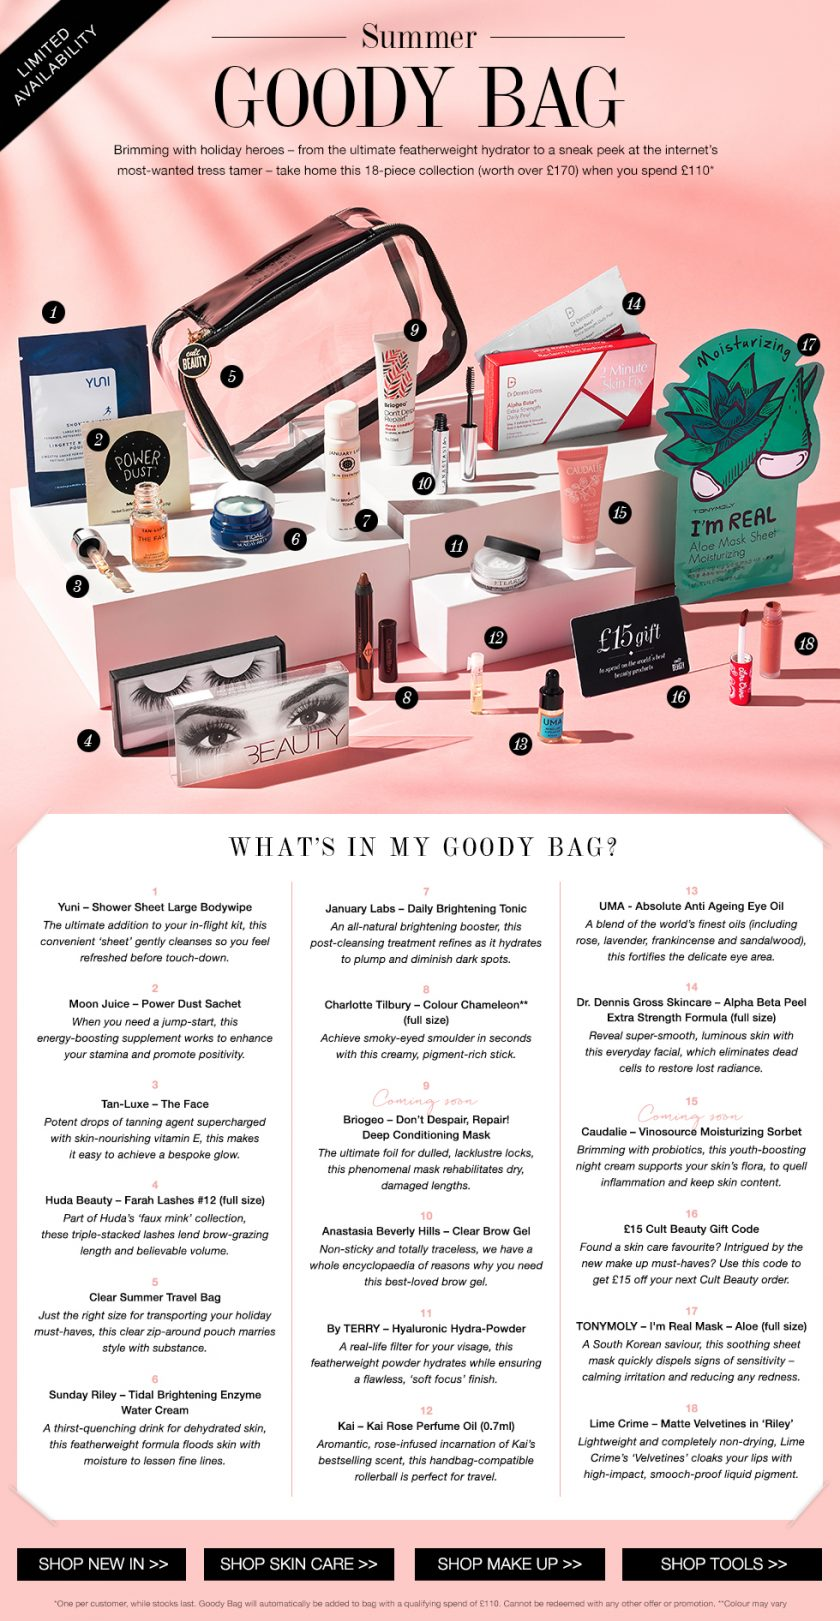 CULT BEAUTY Goody Bag Summer 2017